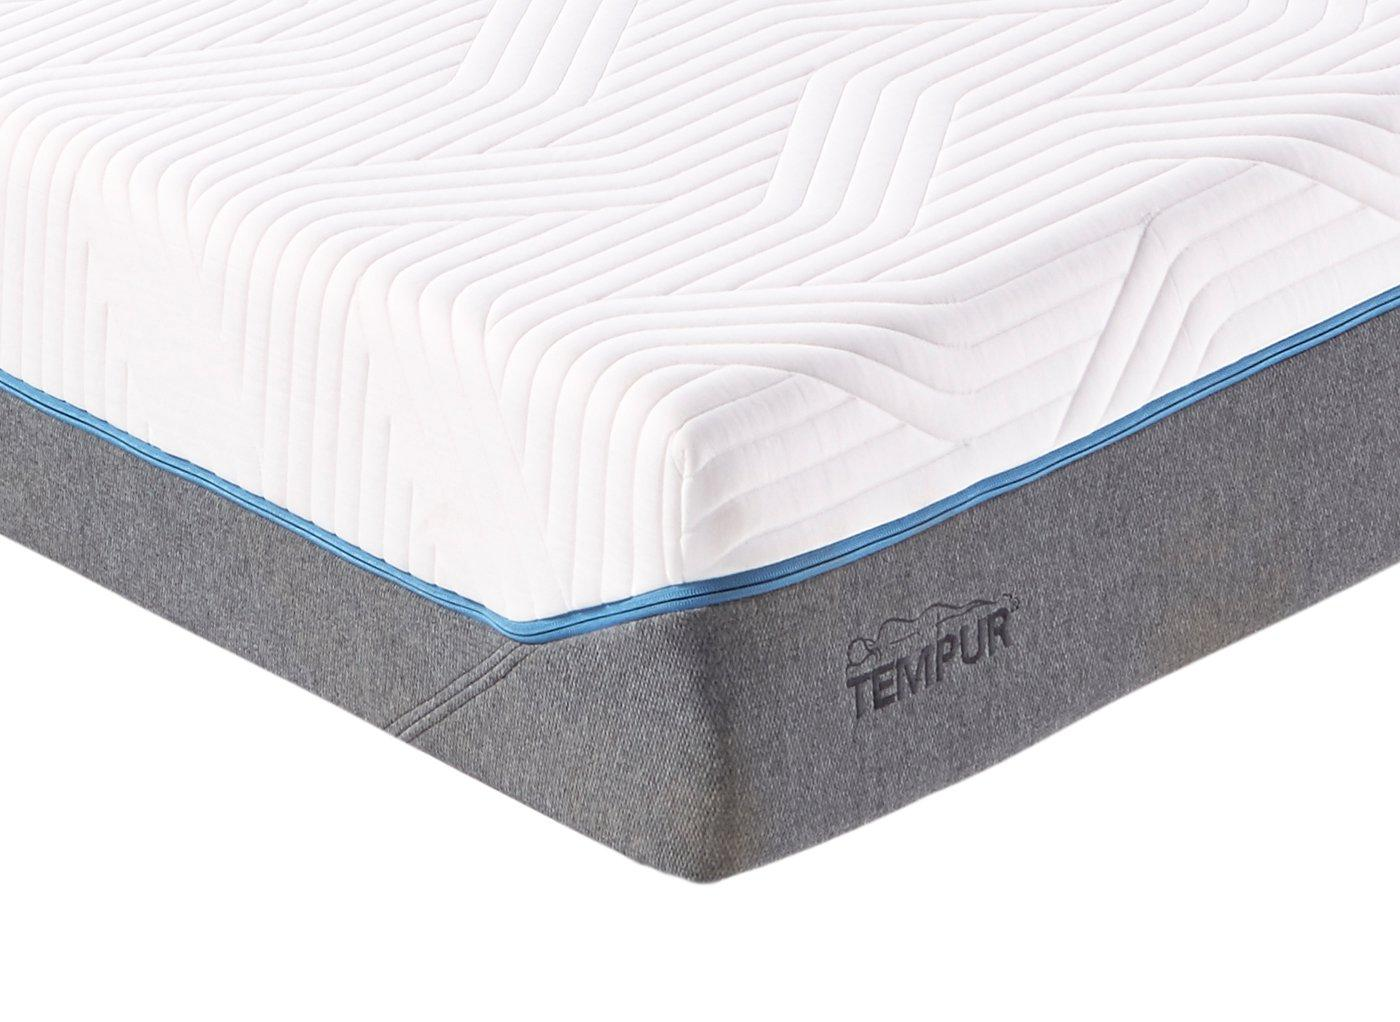 Tempur Cooltouch Cloud Elite Adjustable Mattress - Medium